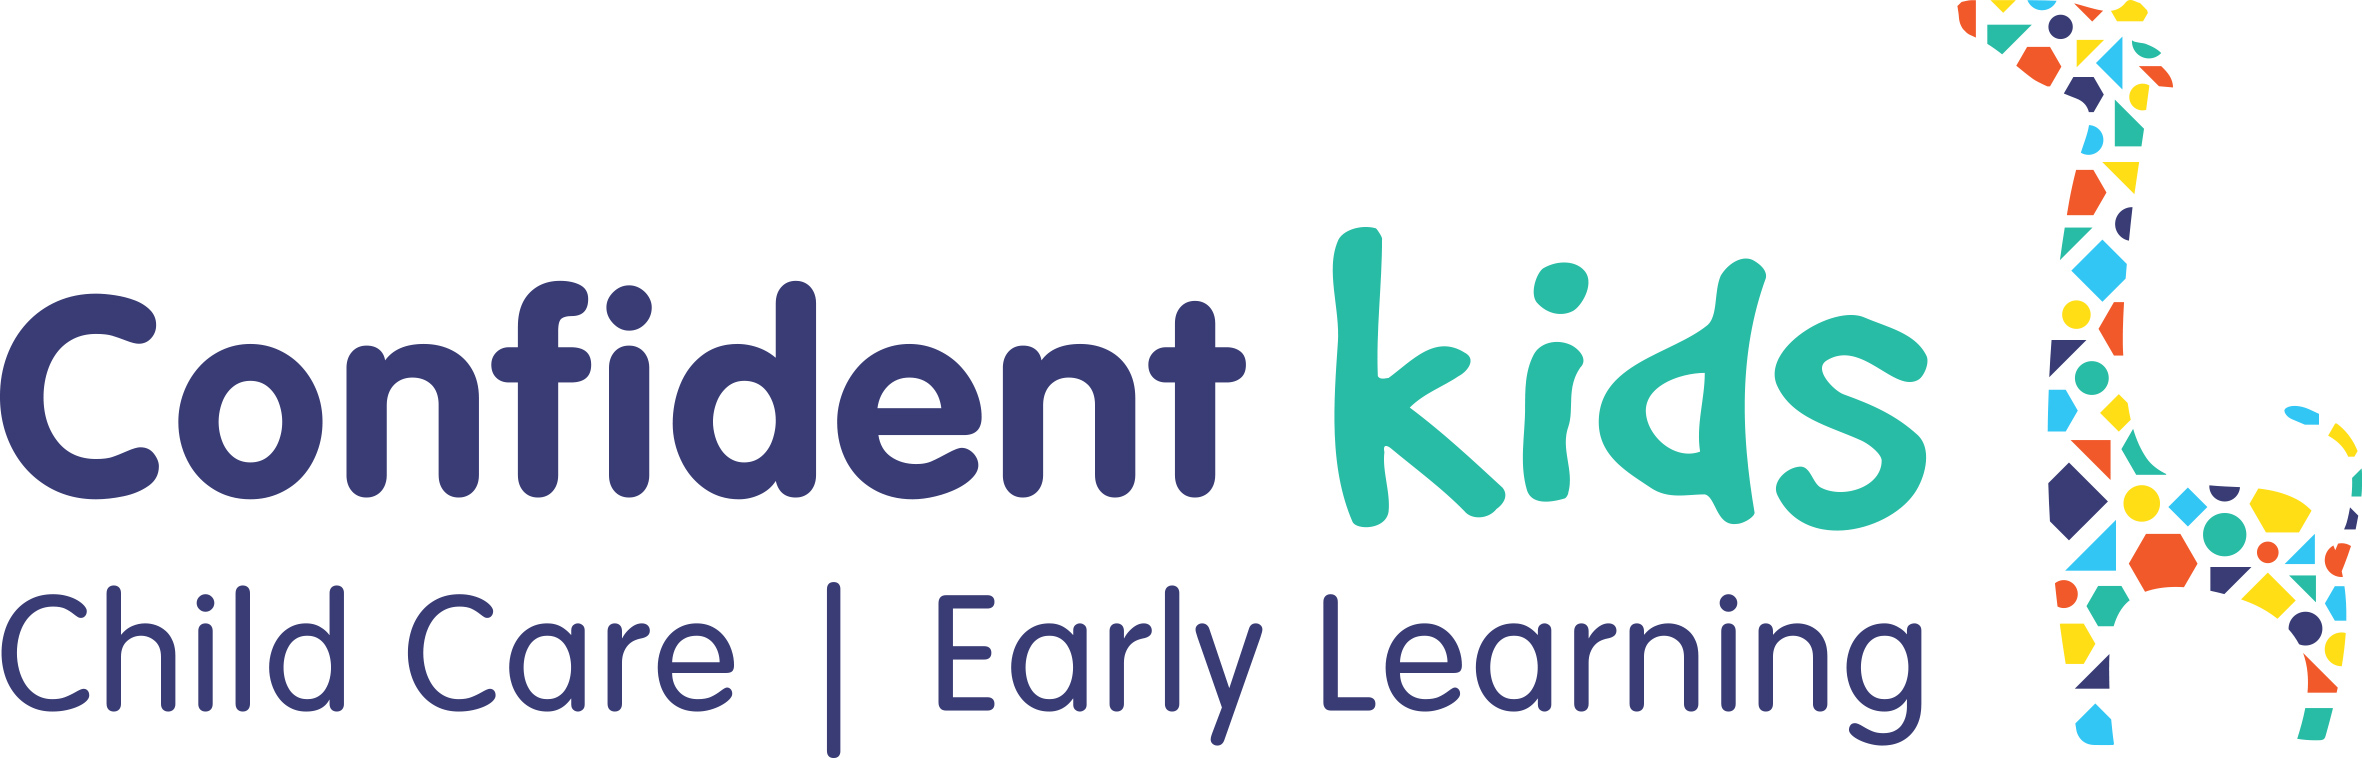 Confident Kids Child Care | Early Learning